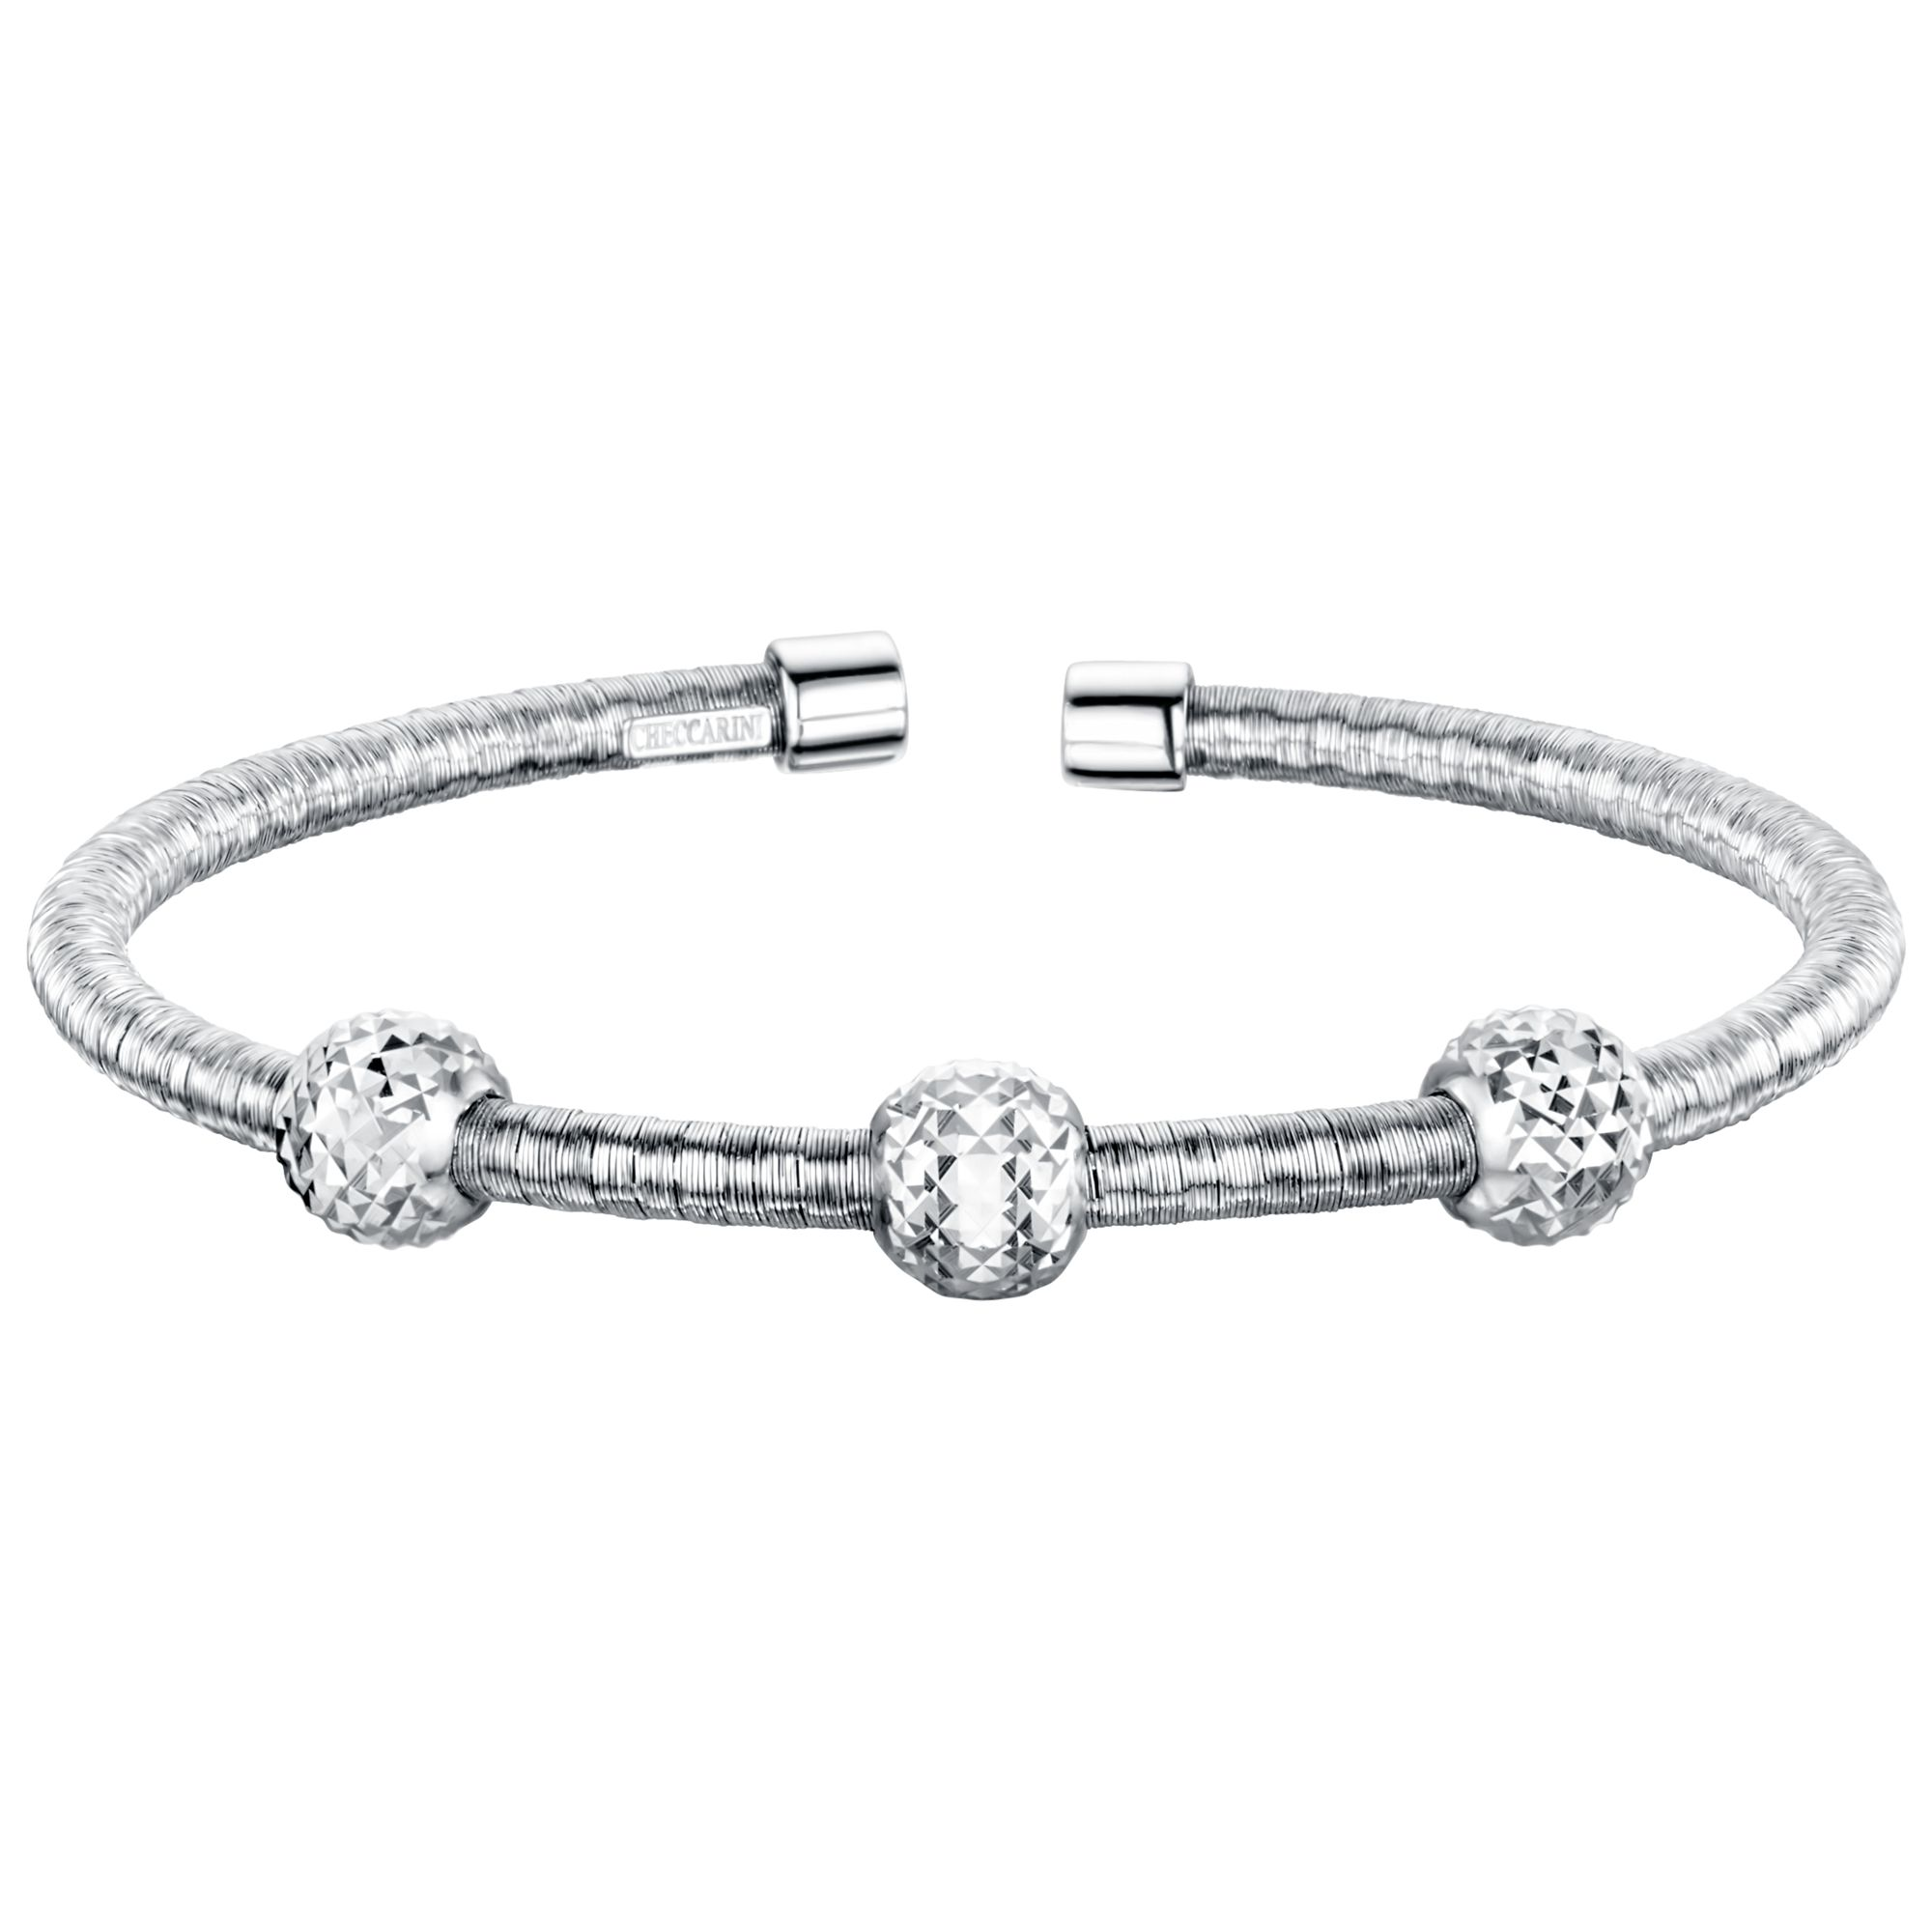 Jools by Jenny Brown Jools by Jenny Brown Rhodium Plated Silver and Cubic Zirconia Single Band Bangle, Silver